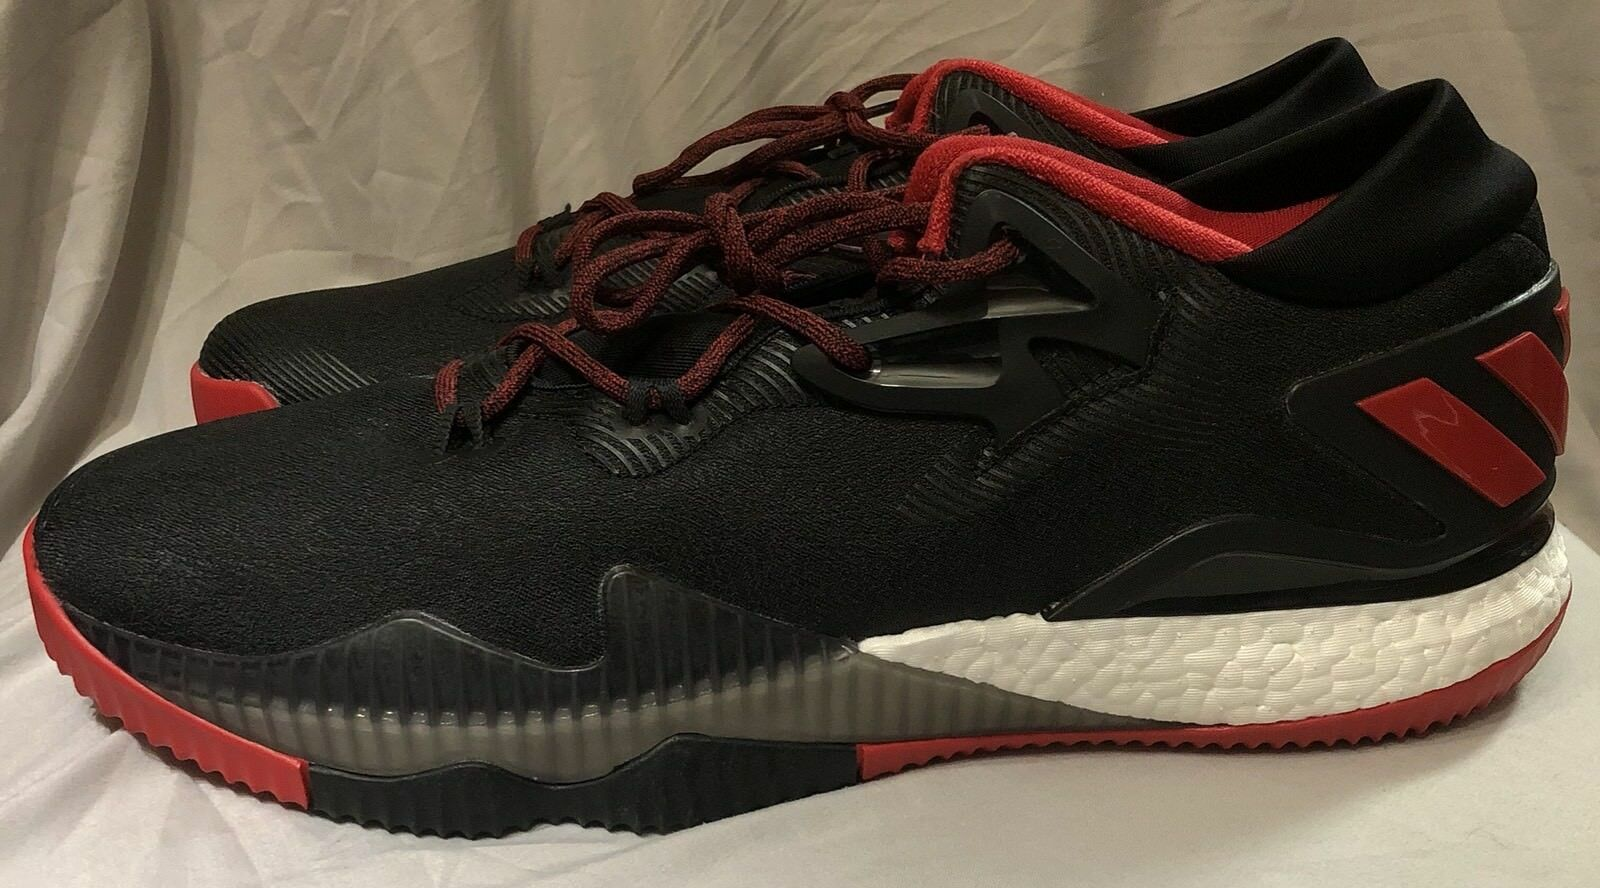 Adidas Crazylight Boost Low Black Red Basketball shoes Size 17 B42969